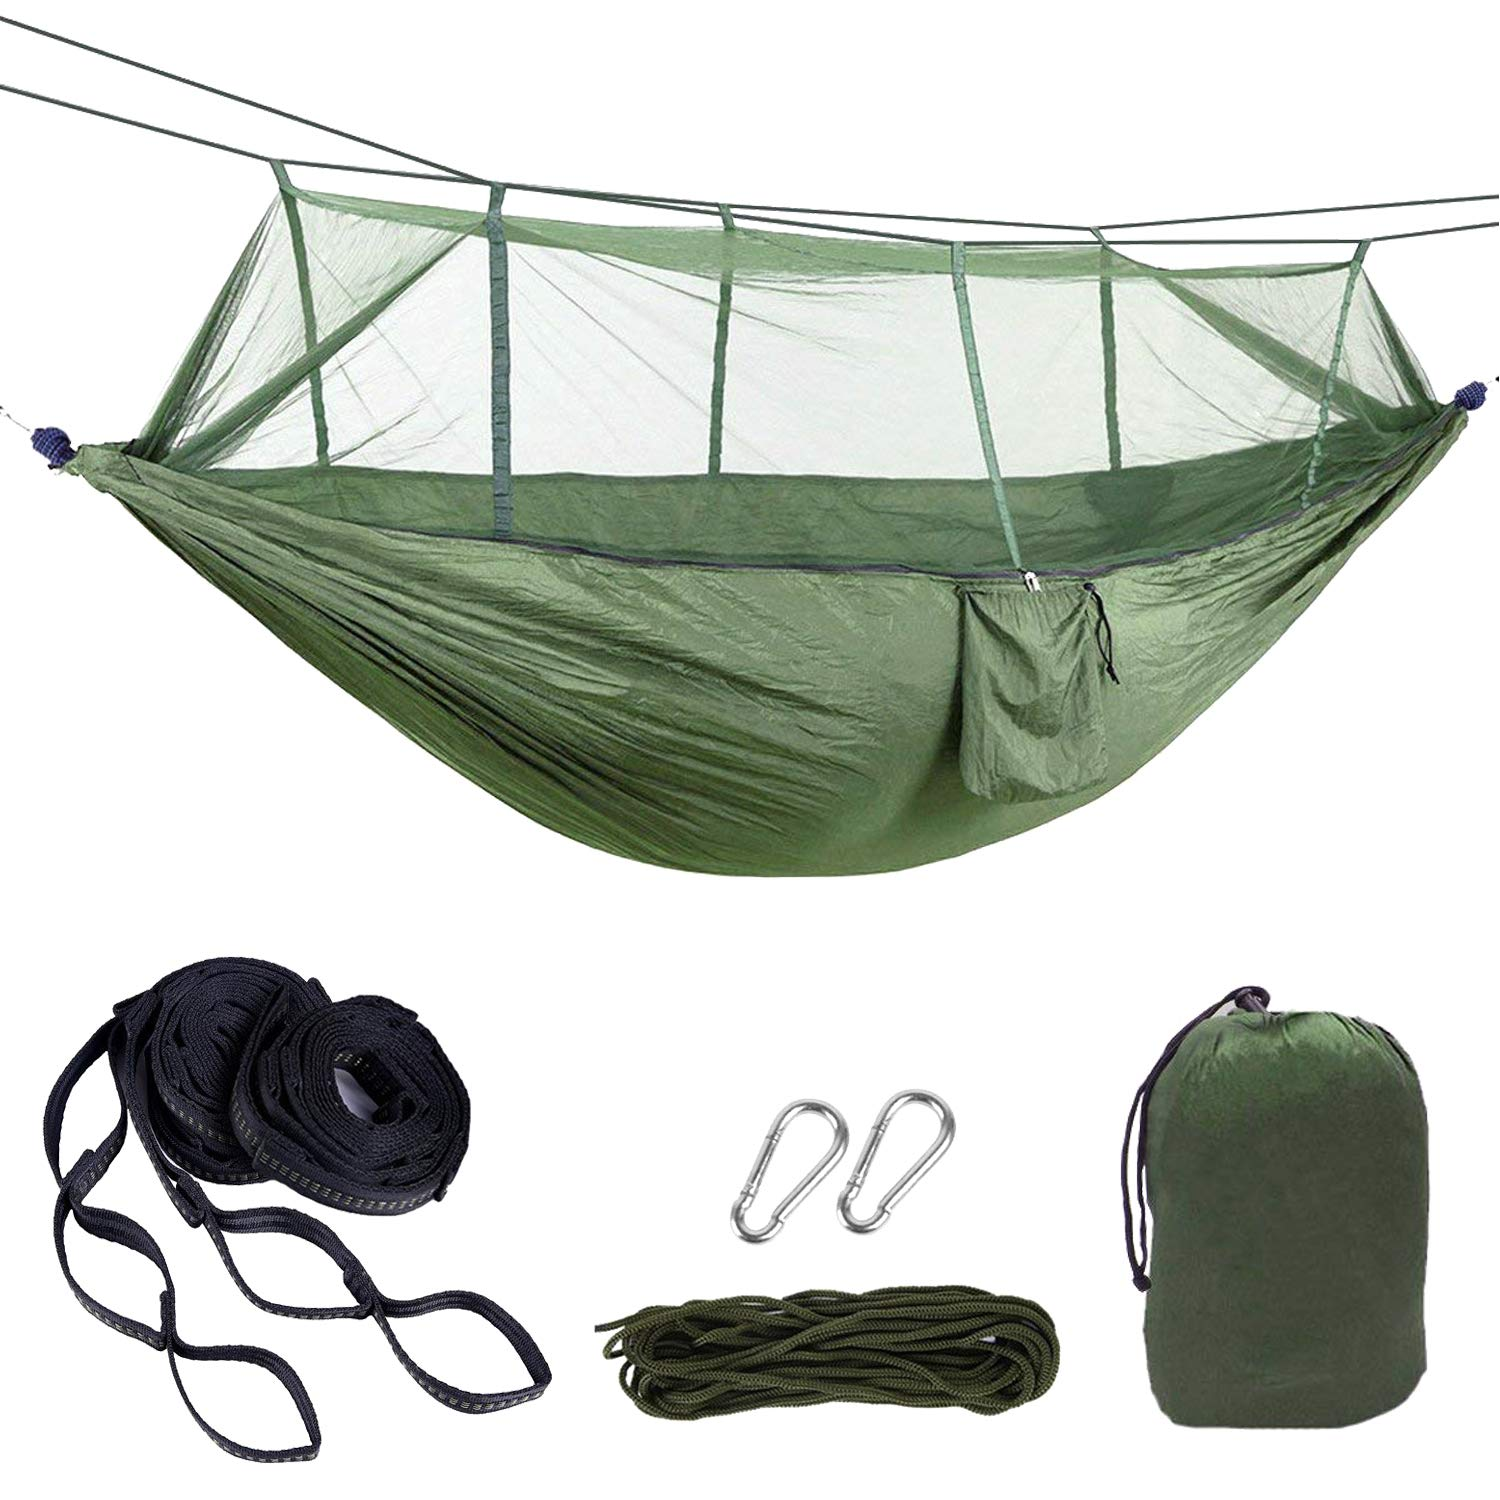 HENGQINAG 2 Person Camping hammock,High-Strength 530lb Hammock, Ultra-Light Mosquito Net Hammock, Suitable for Backpacks, Travel, Portable Hammock on The Beach. (Green) HENGQIANG